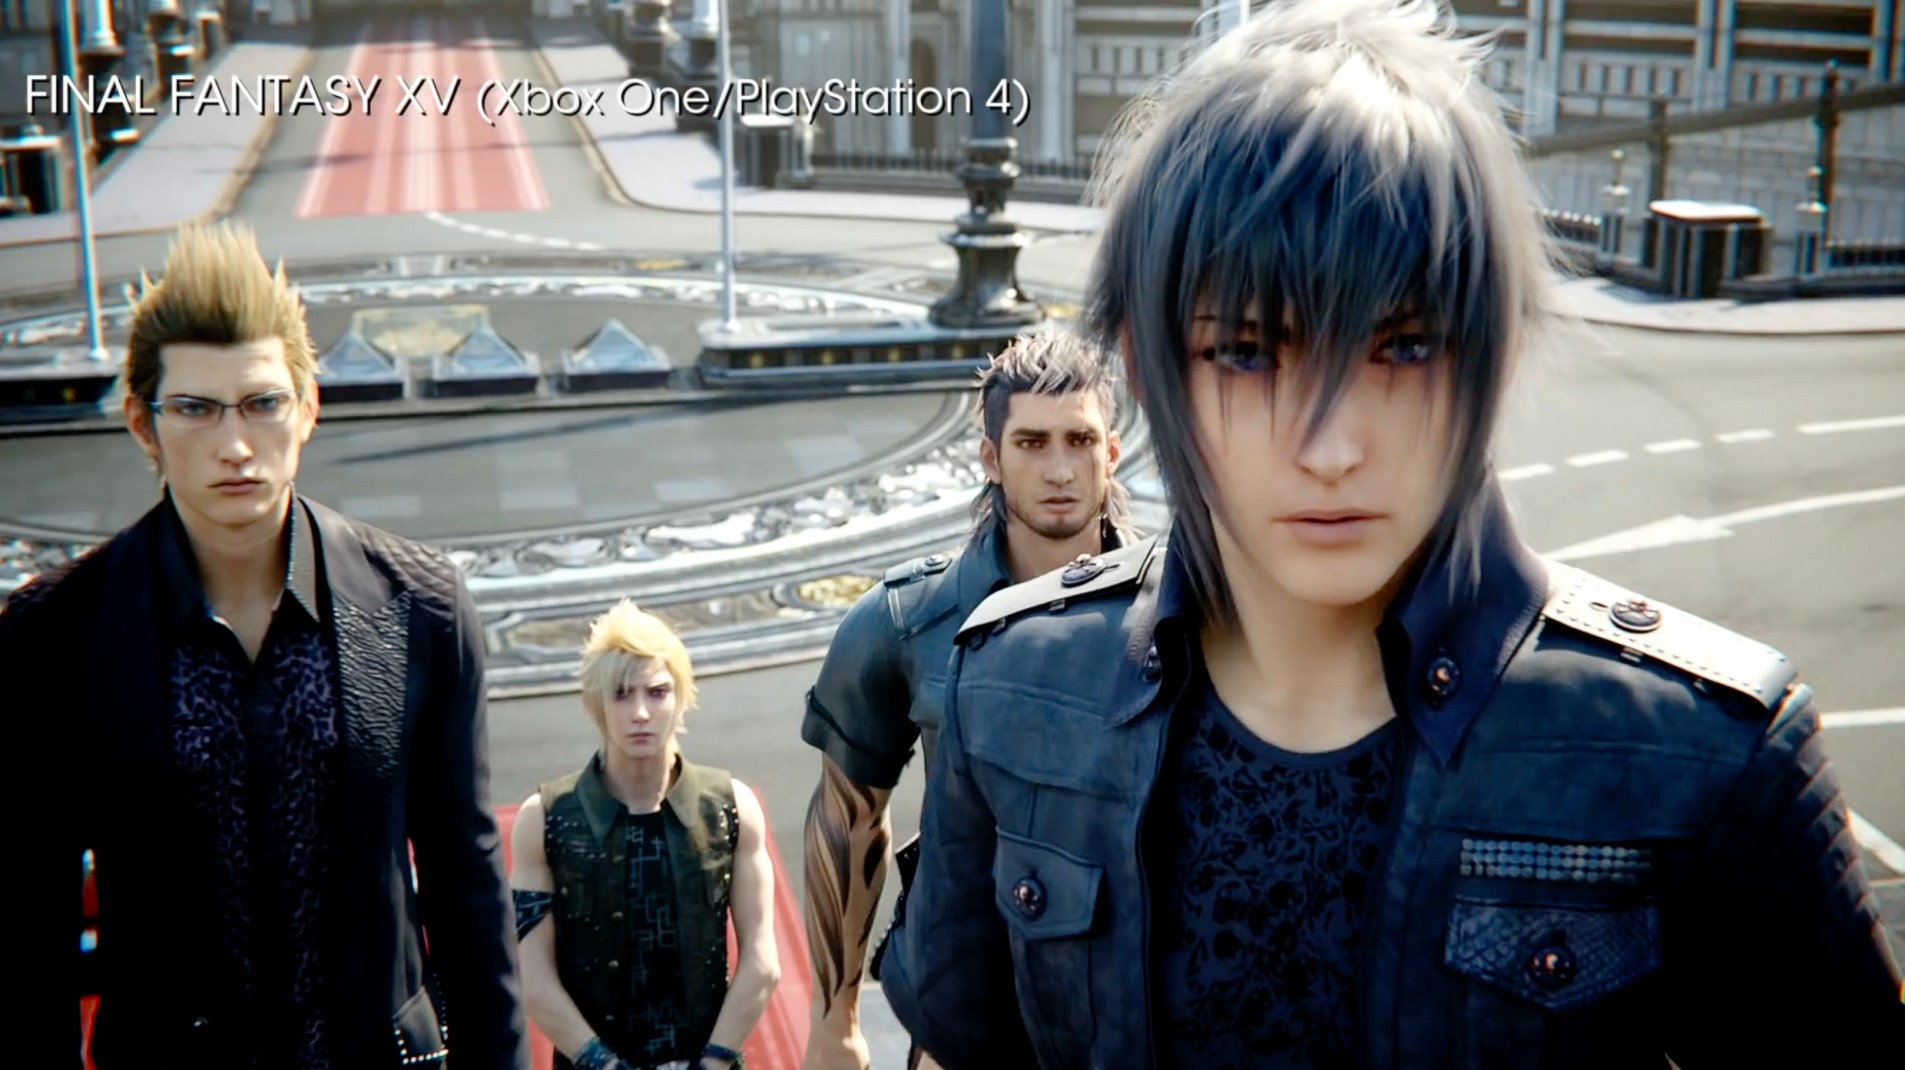 Final Fantasy 15 Hd Wallpaper Final Fantasy Xv Delayed To Offer The Complete Experience